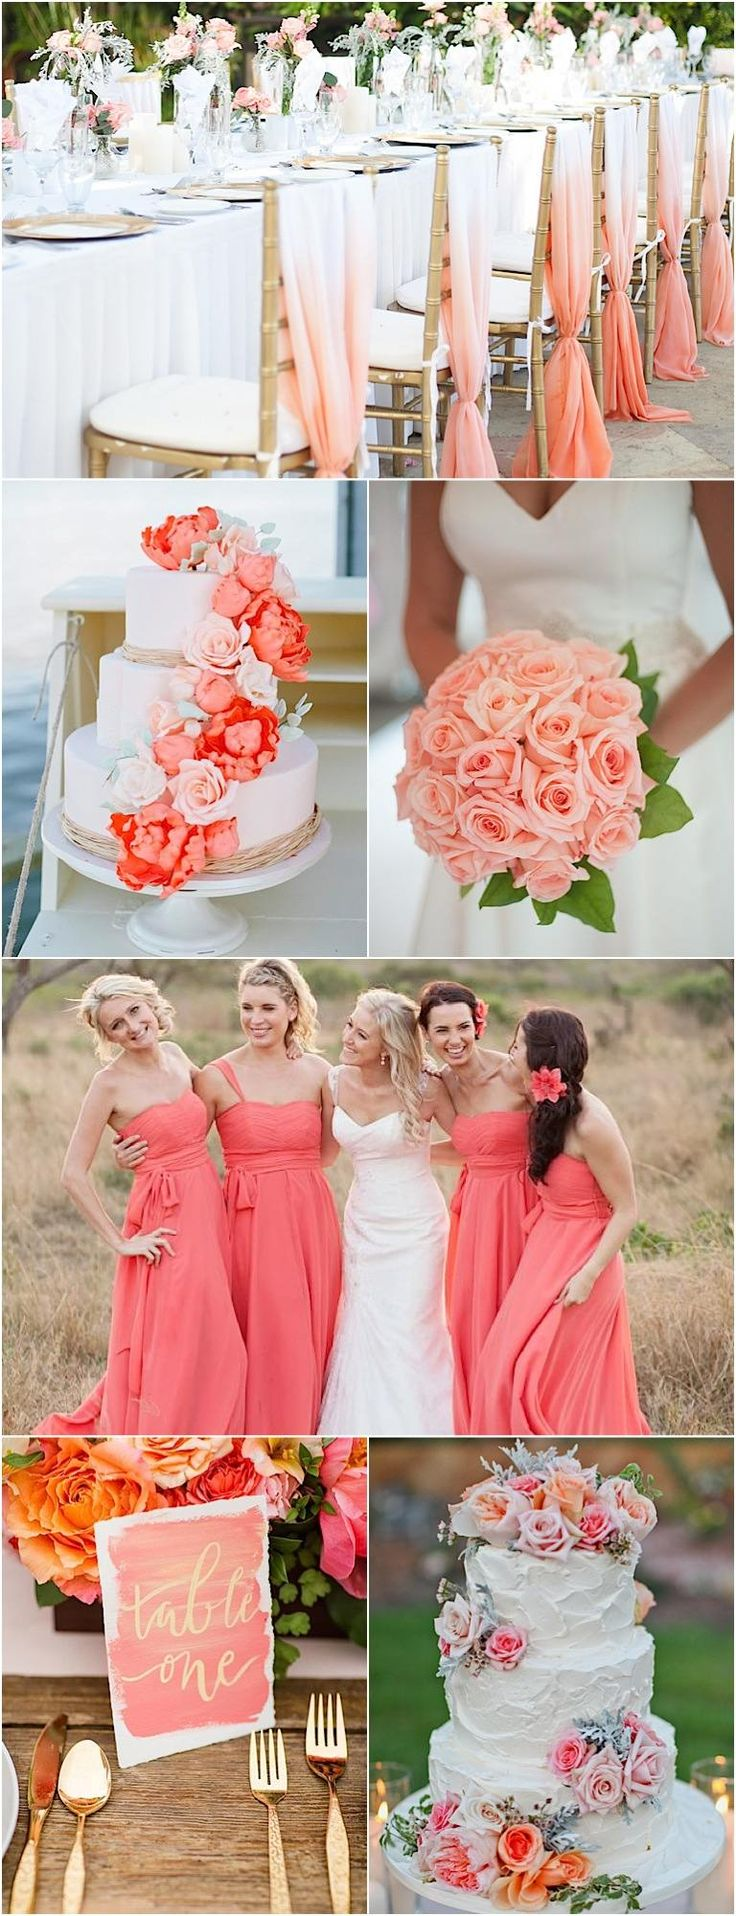 Who doesn't love a sweet coral-colored wedding? This summer hue inspires some of the loveliest wedding ideas, especially when paired with a warm gold accent bringing a romantic glow to any event. Check out some of our favorite coral and gold wedding ideas below, and take away some fabulous inspiration for your own event. Beautiful Bouquet Ideas Featured Photography: Blue […]